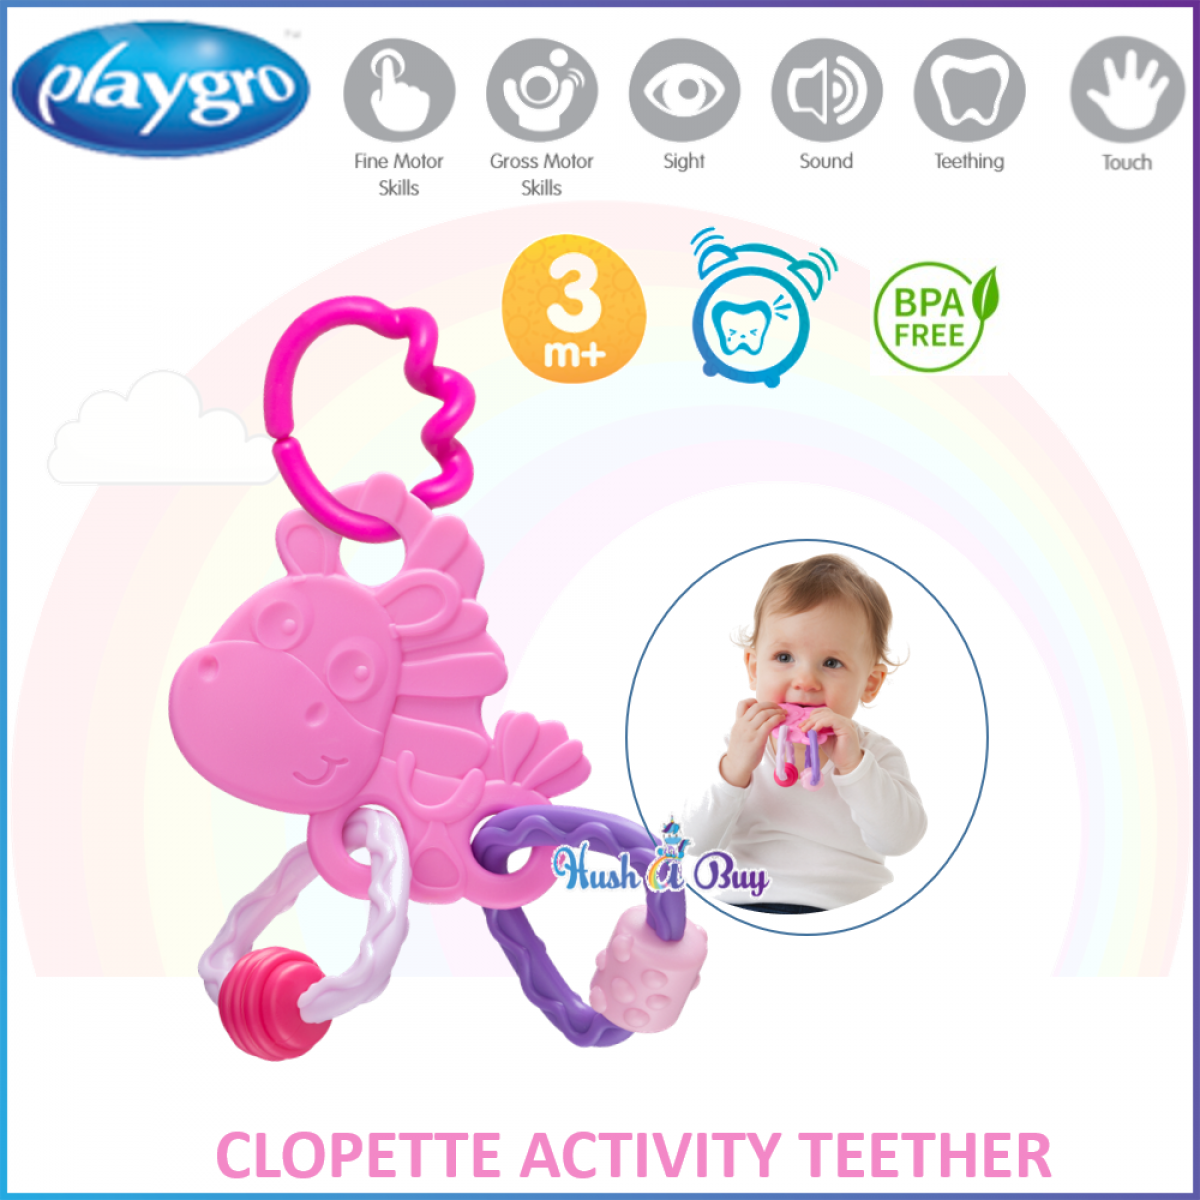 Playgro Activity Teether- Clip Clop / Clopette